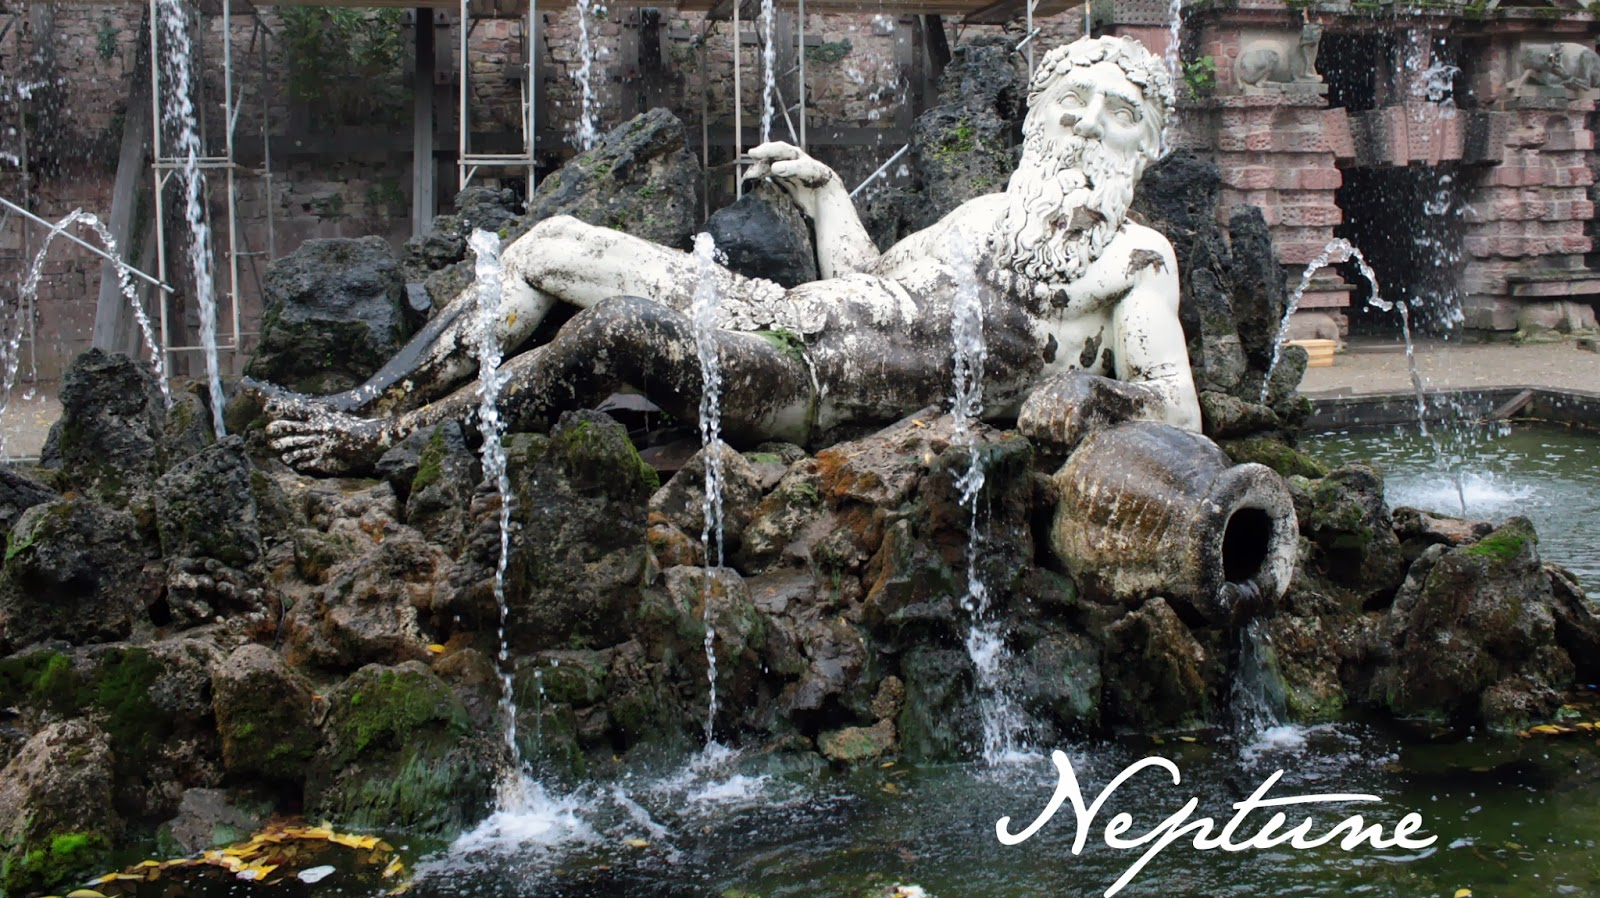 Neptune Fountain The Tipsy Terrier blog